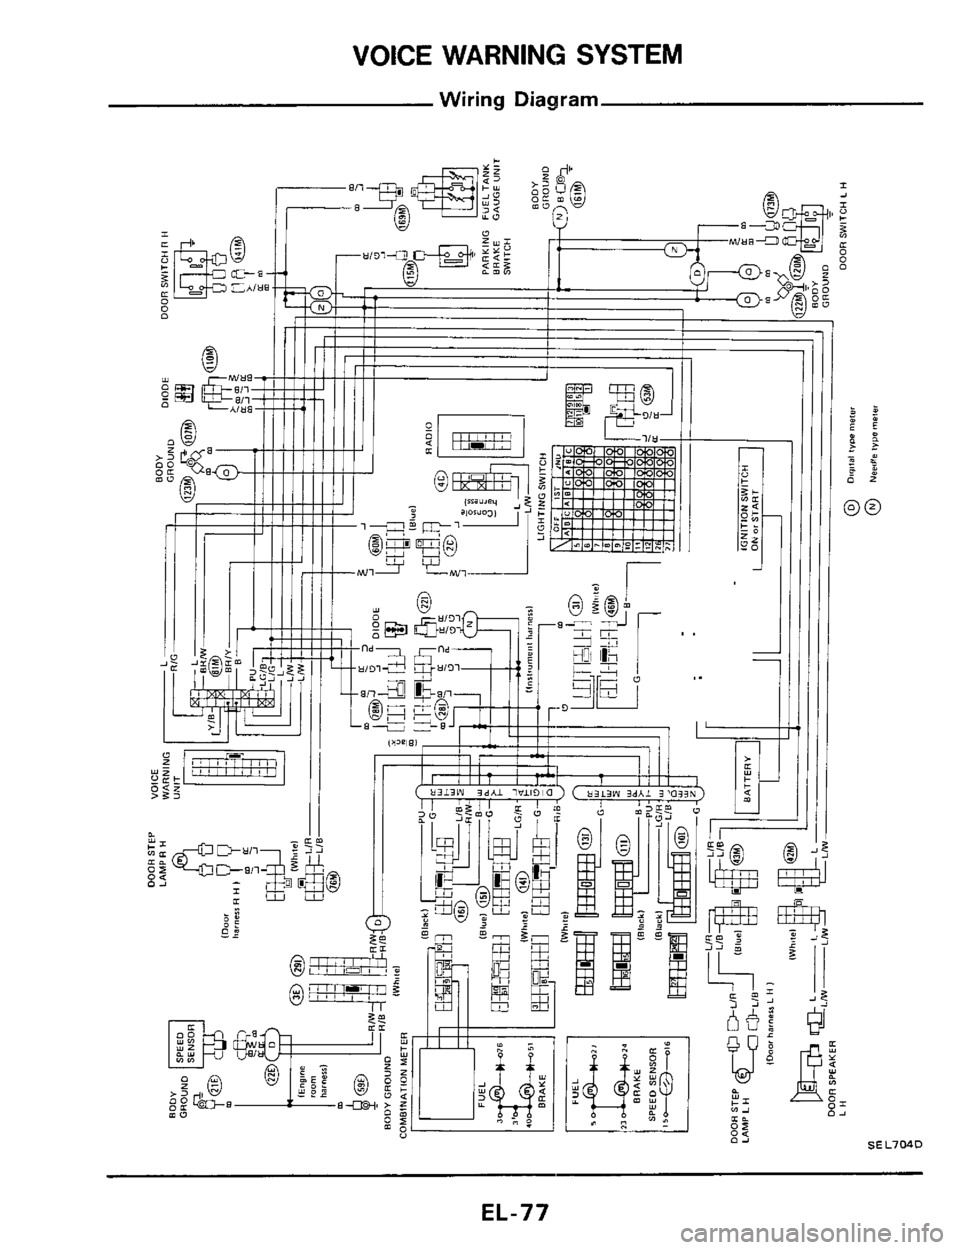 Warning Nissan 300zx 1984 Z31 Electrical System Workshop Manual